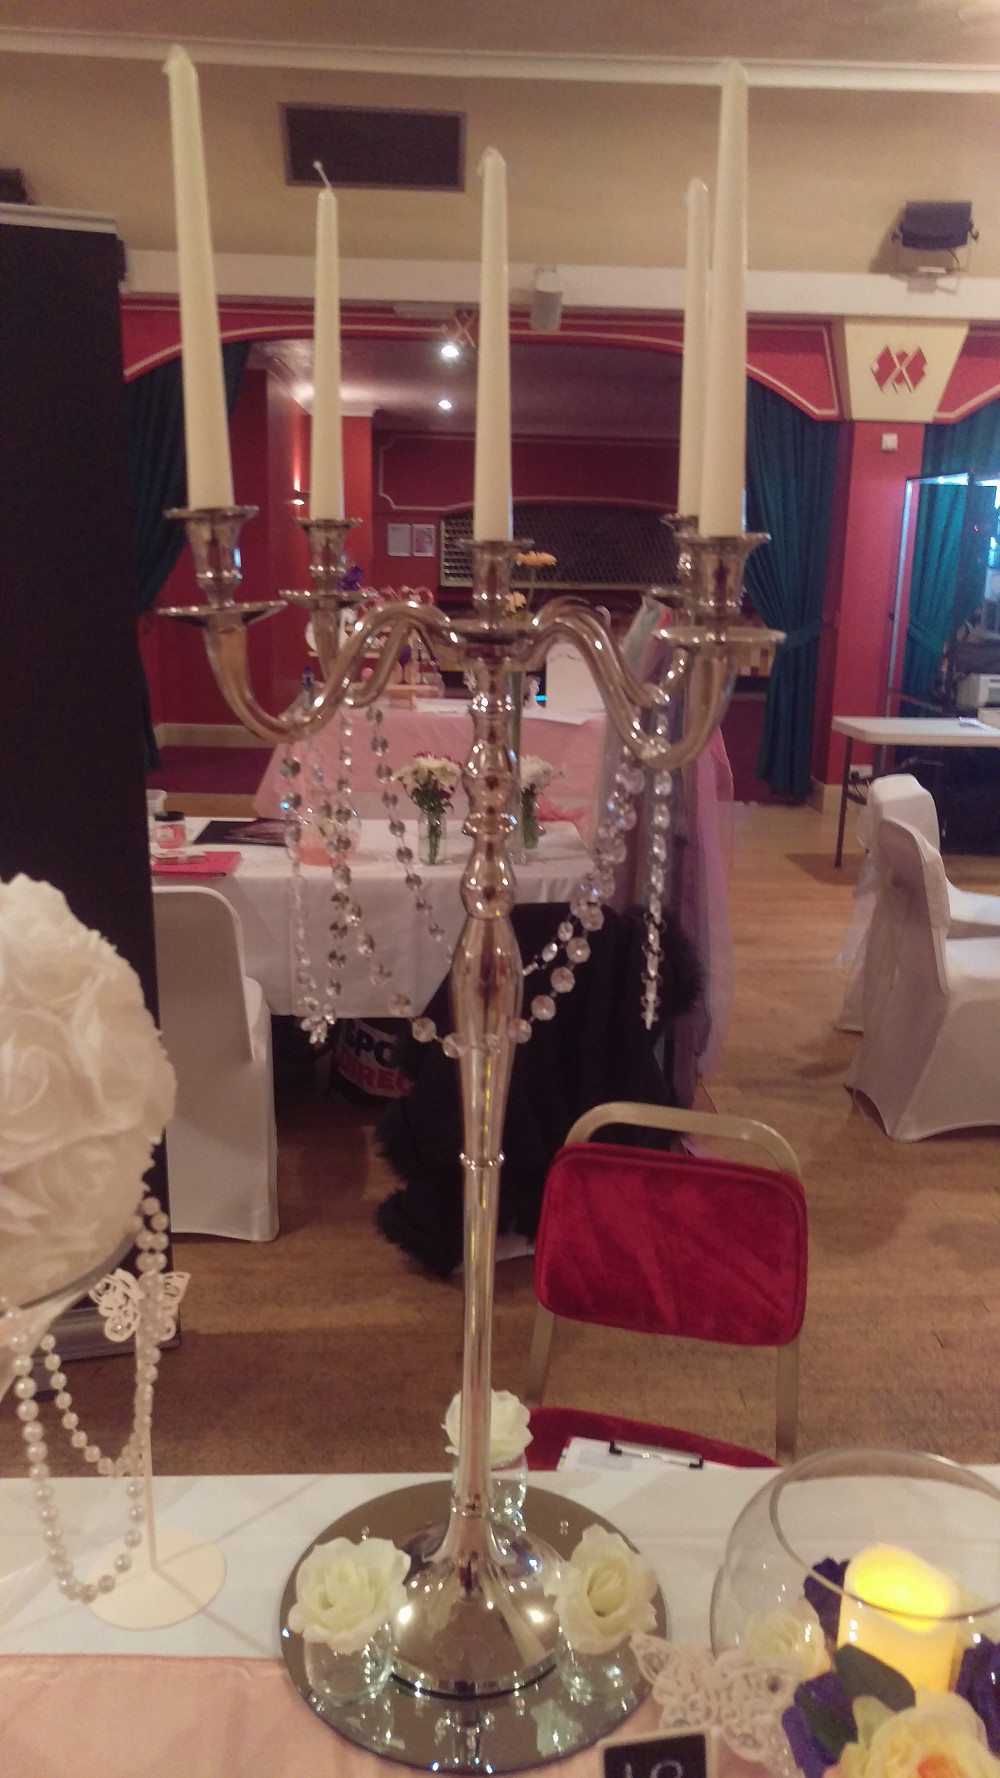 Silver Candelabra and Crystal effect Hanging Garland with Mirror plate and Rose Buds Wedding Venue Table Decoration by Embellish Venue Styling Kent - www.embellishvenuestyling.uk